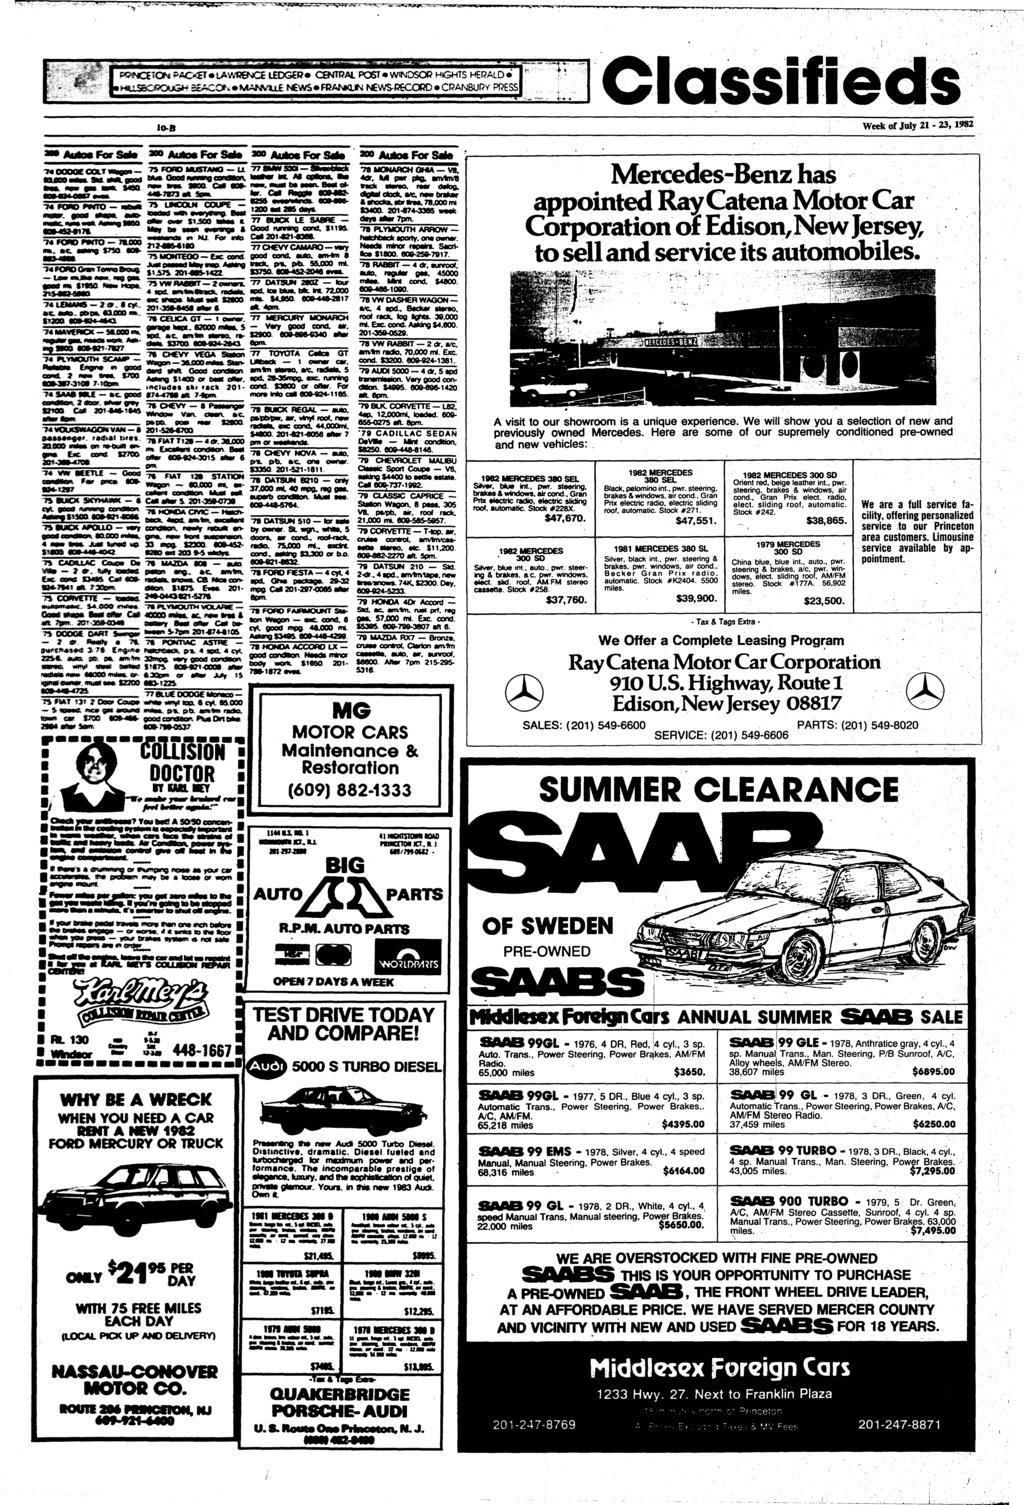 "E PACKET LAWRGNCE lhjgb?» CCNTRAL POST WINDSOR HGHTS HERALD I HUSBOROUGM BCACO^*»MANVSUL ^<VtfS FRA^#QJ^i NEWS-RECORD CRANaiRY PRESS! Classifieds IO-B Week of July 21-23,1982 ""?< OOOOE COCT' Maa."